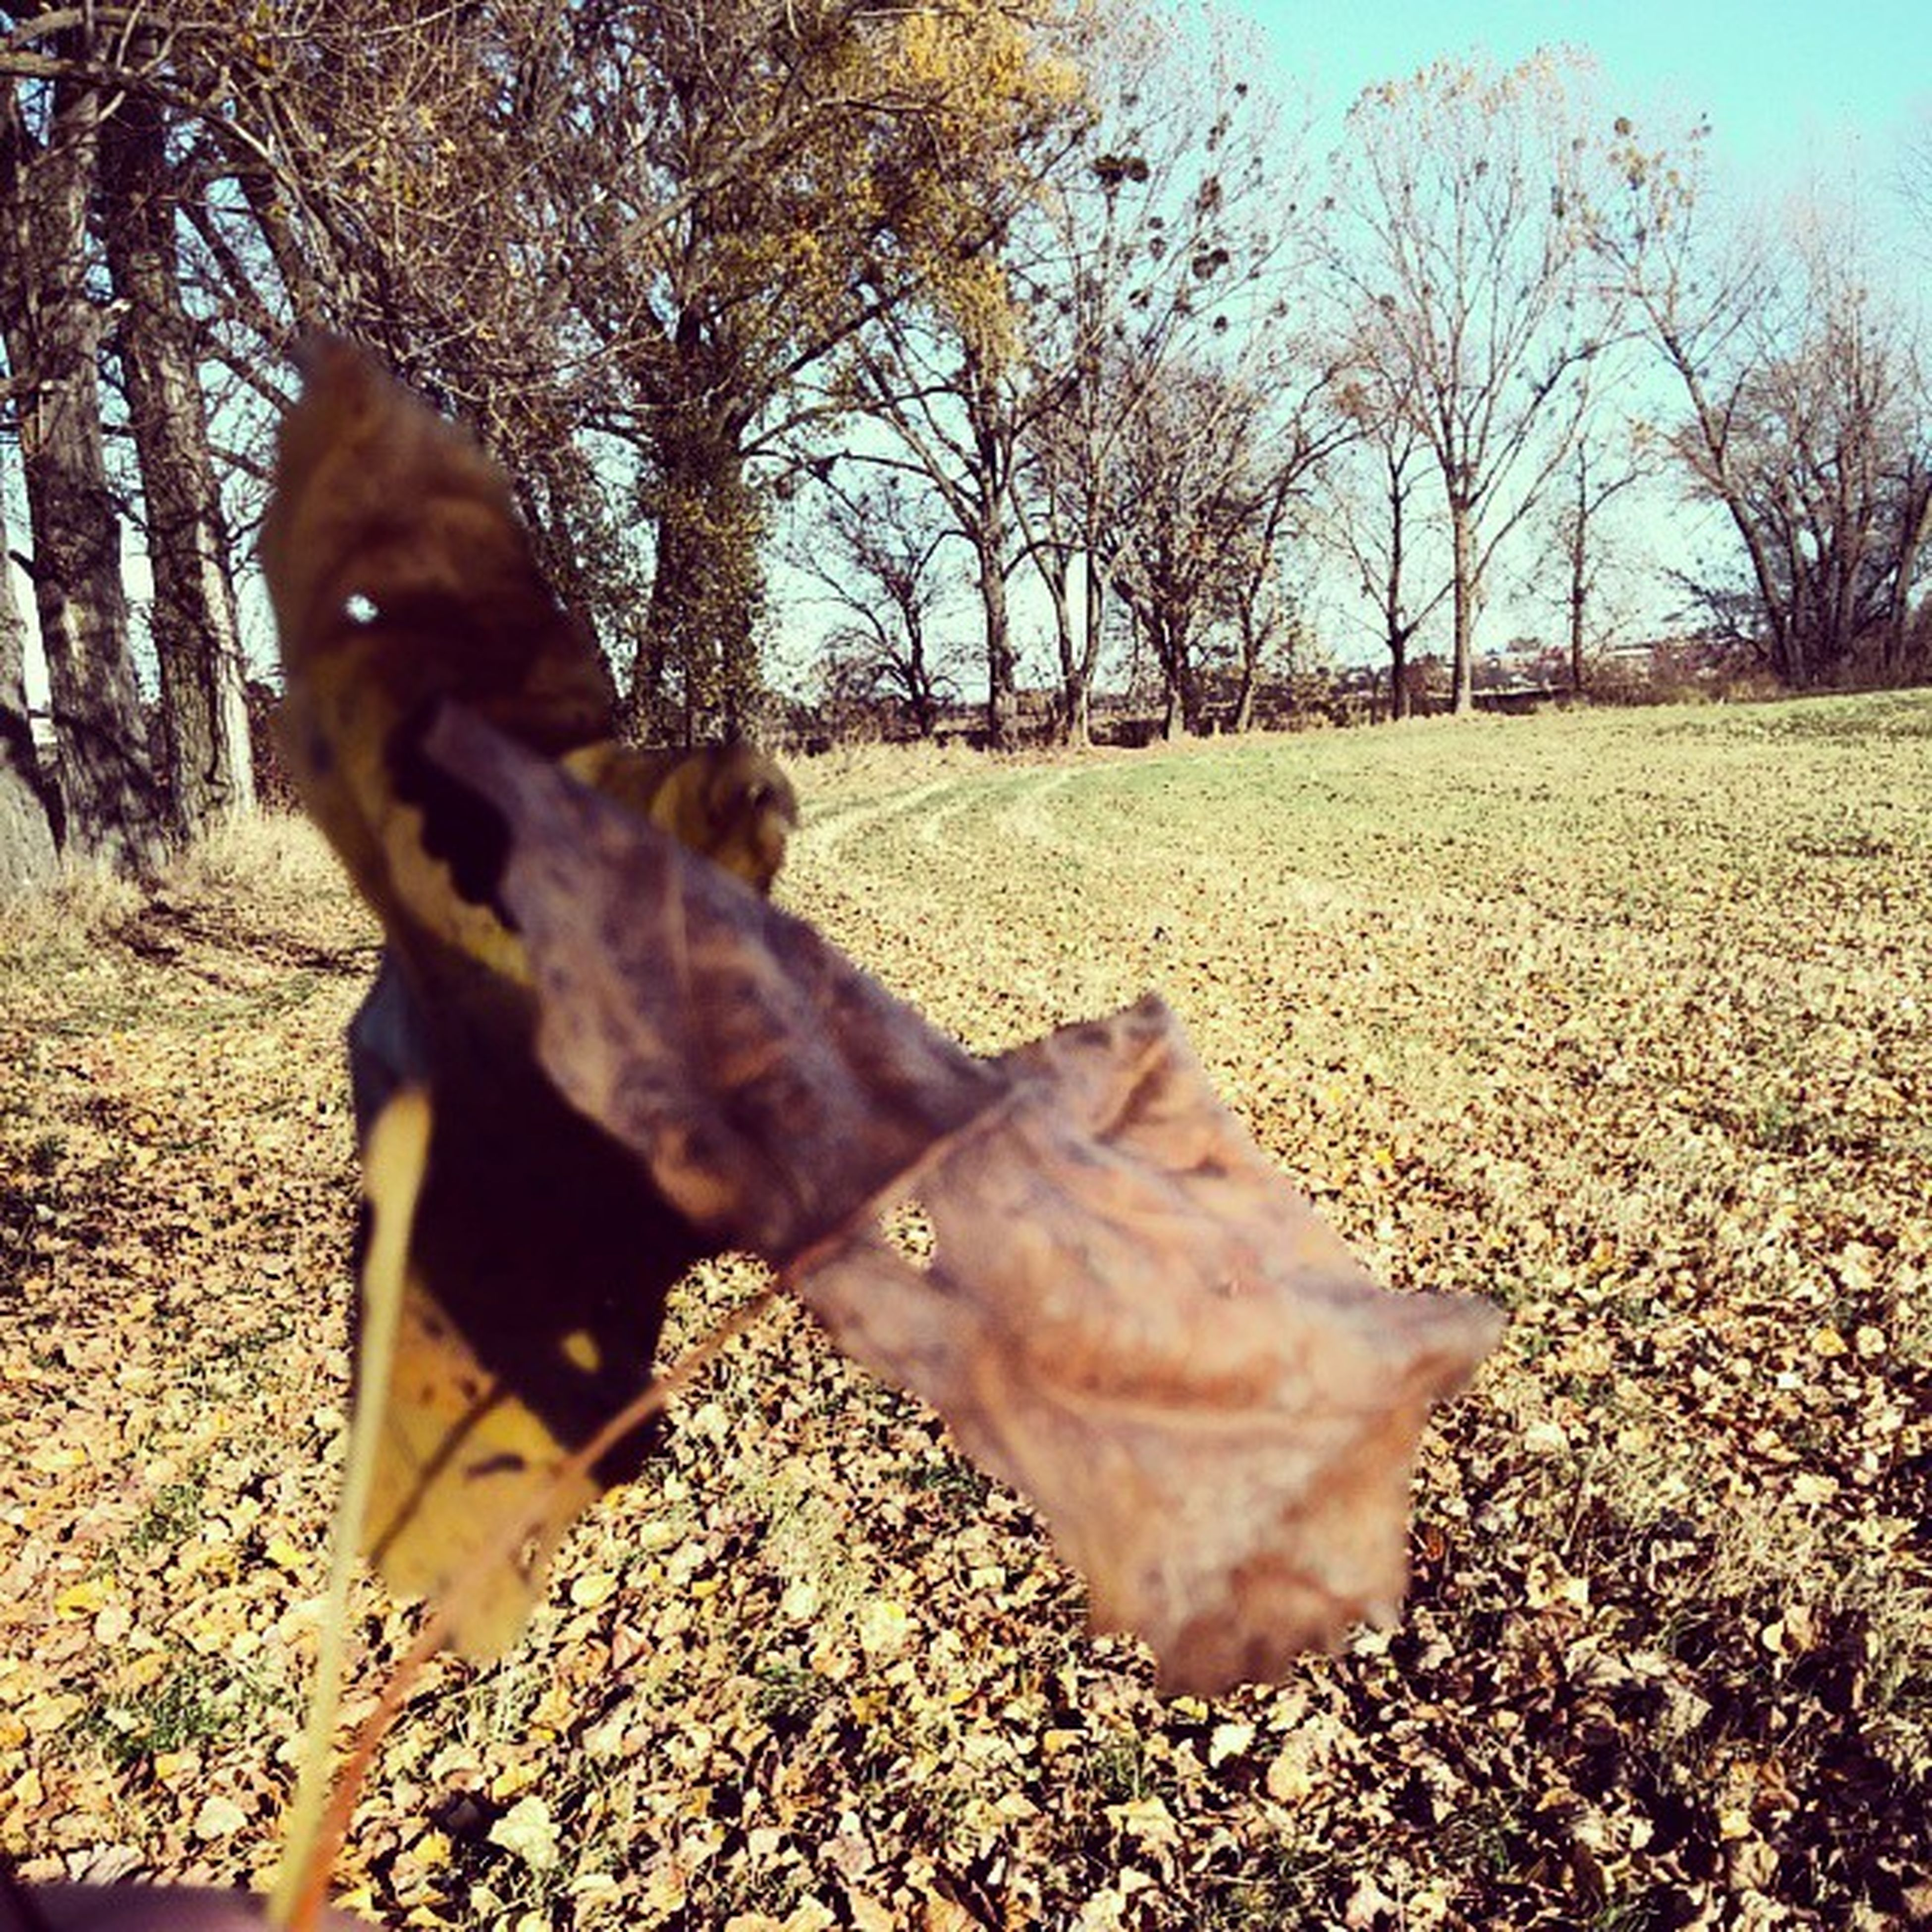 tree, autumn, leaf, tranquility, nature, dry, tranquil scene, change, fallen, season, beauty in nature, field, landscape, leaves, sunlight, scenics, tree trunk, growth, branch, day